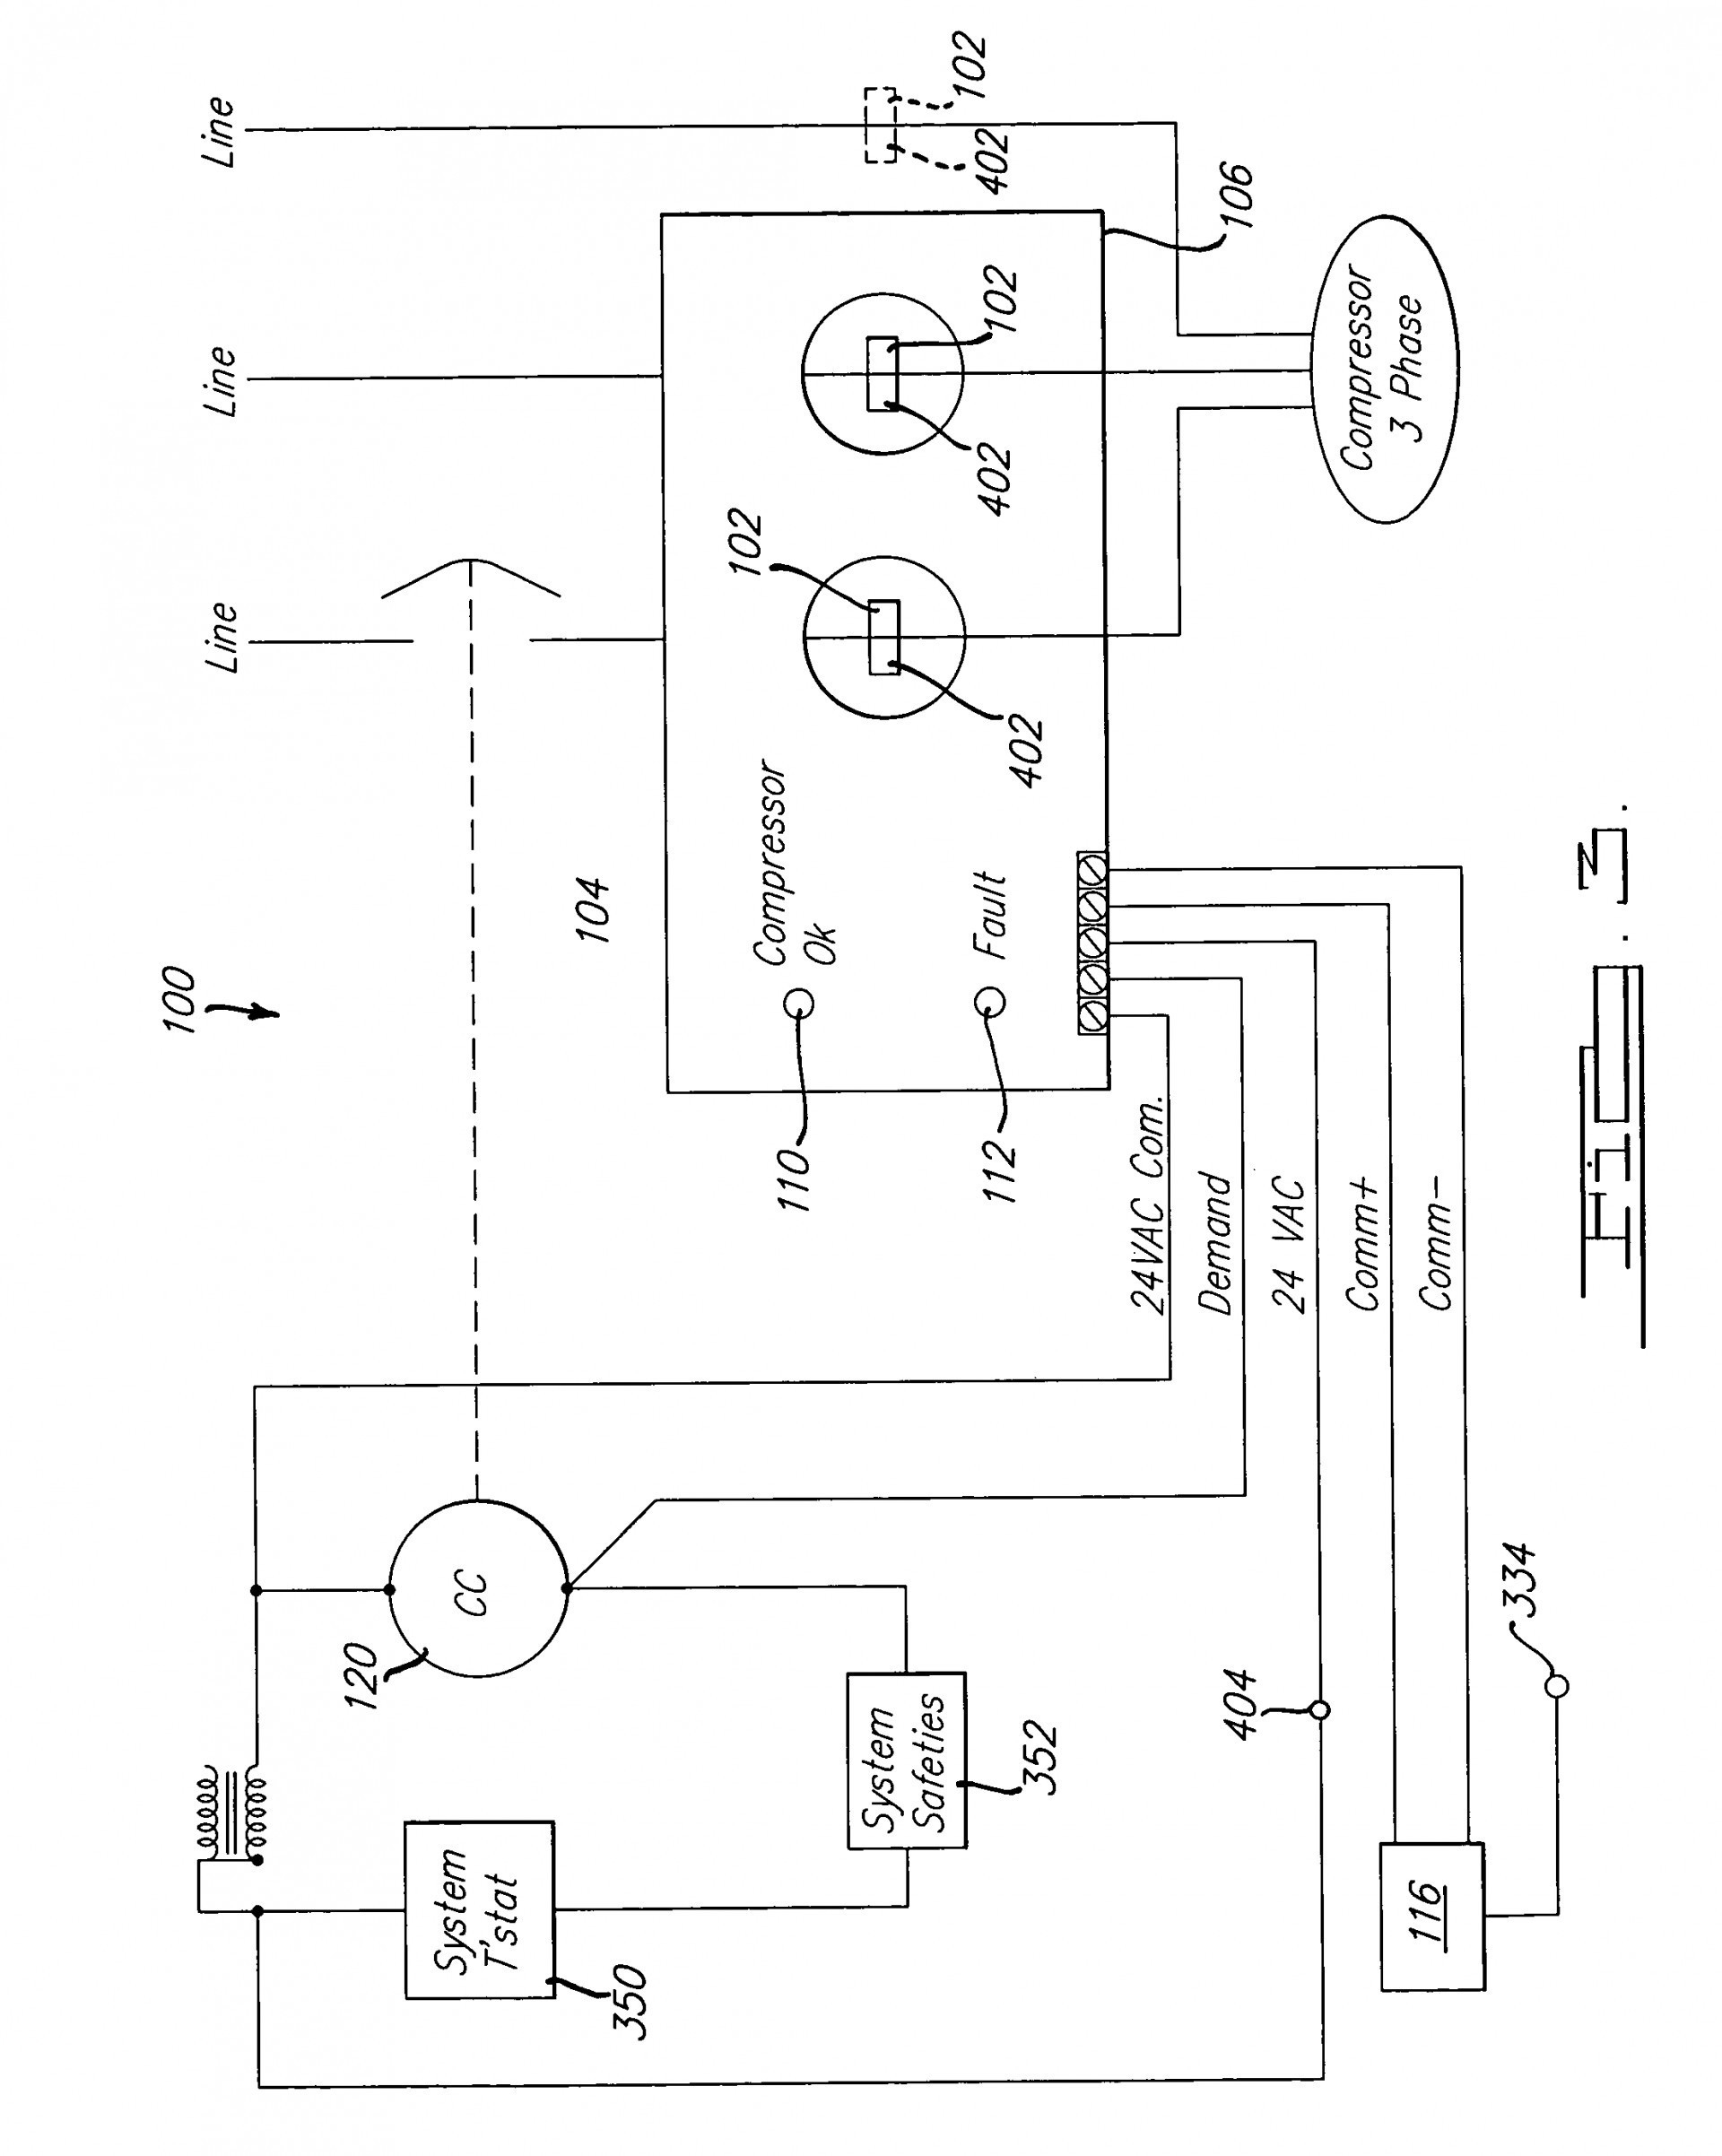 2nd circuit wiring diagram